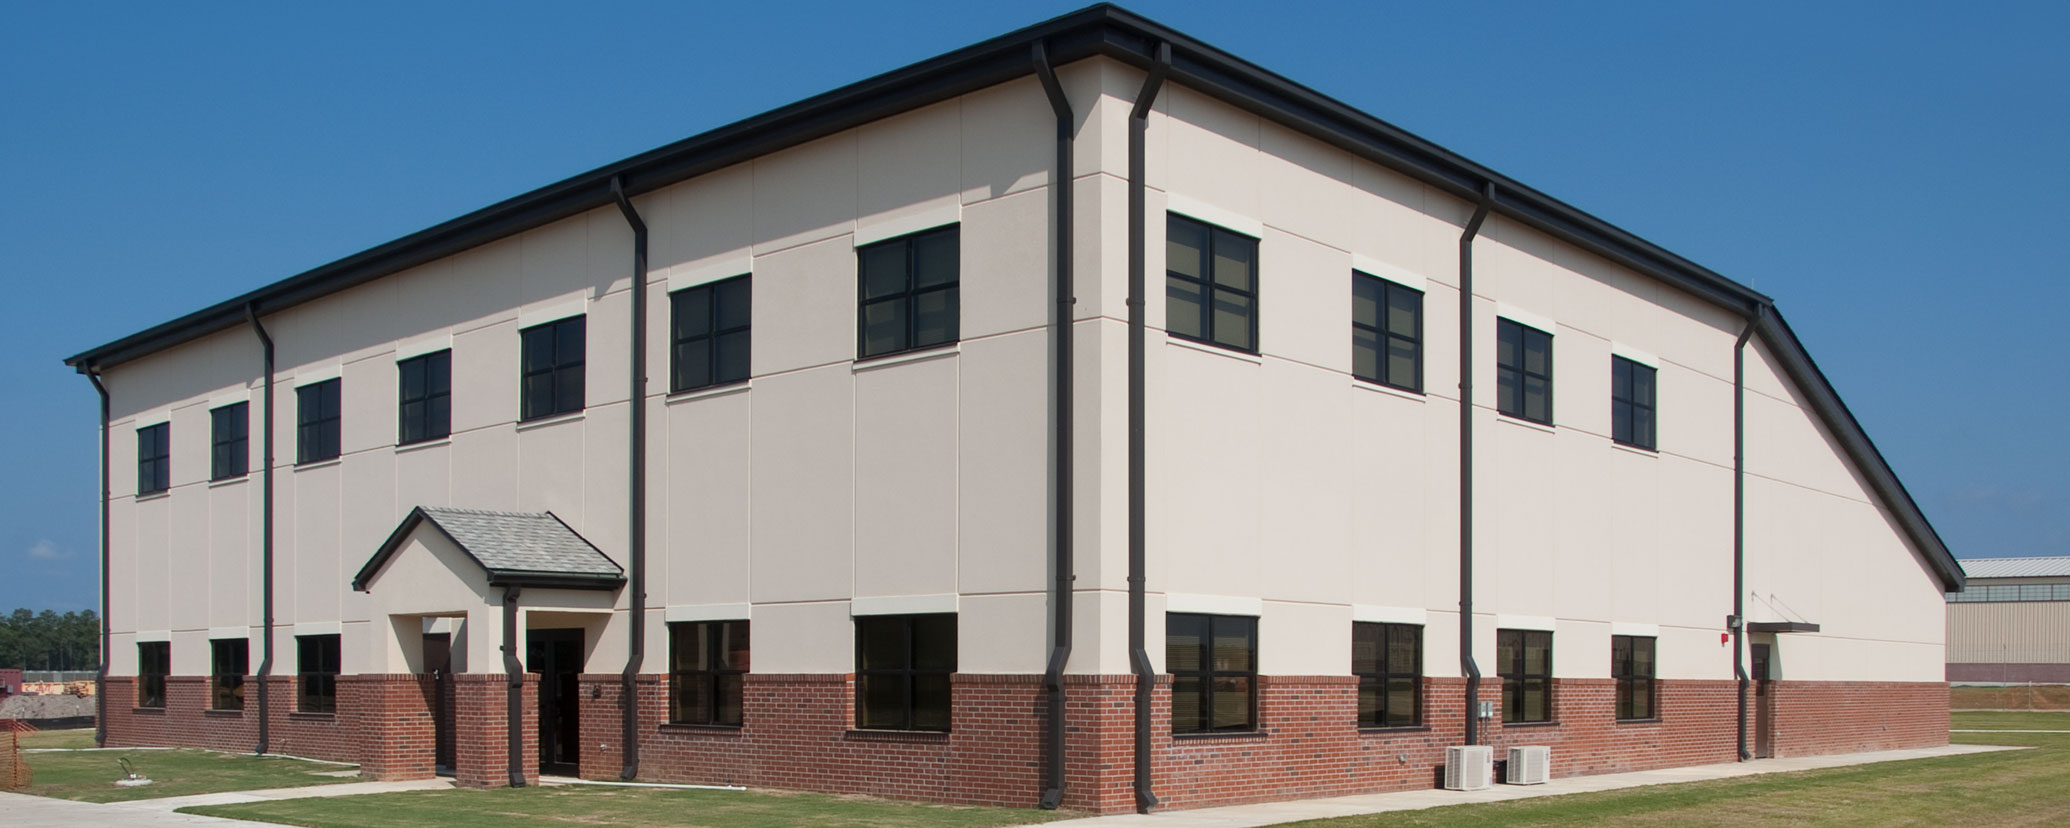 Caddell builds 108th ADA Barracks in Ft. Bragg, NC